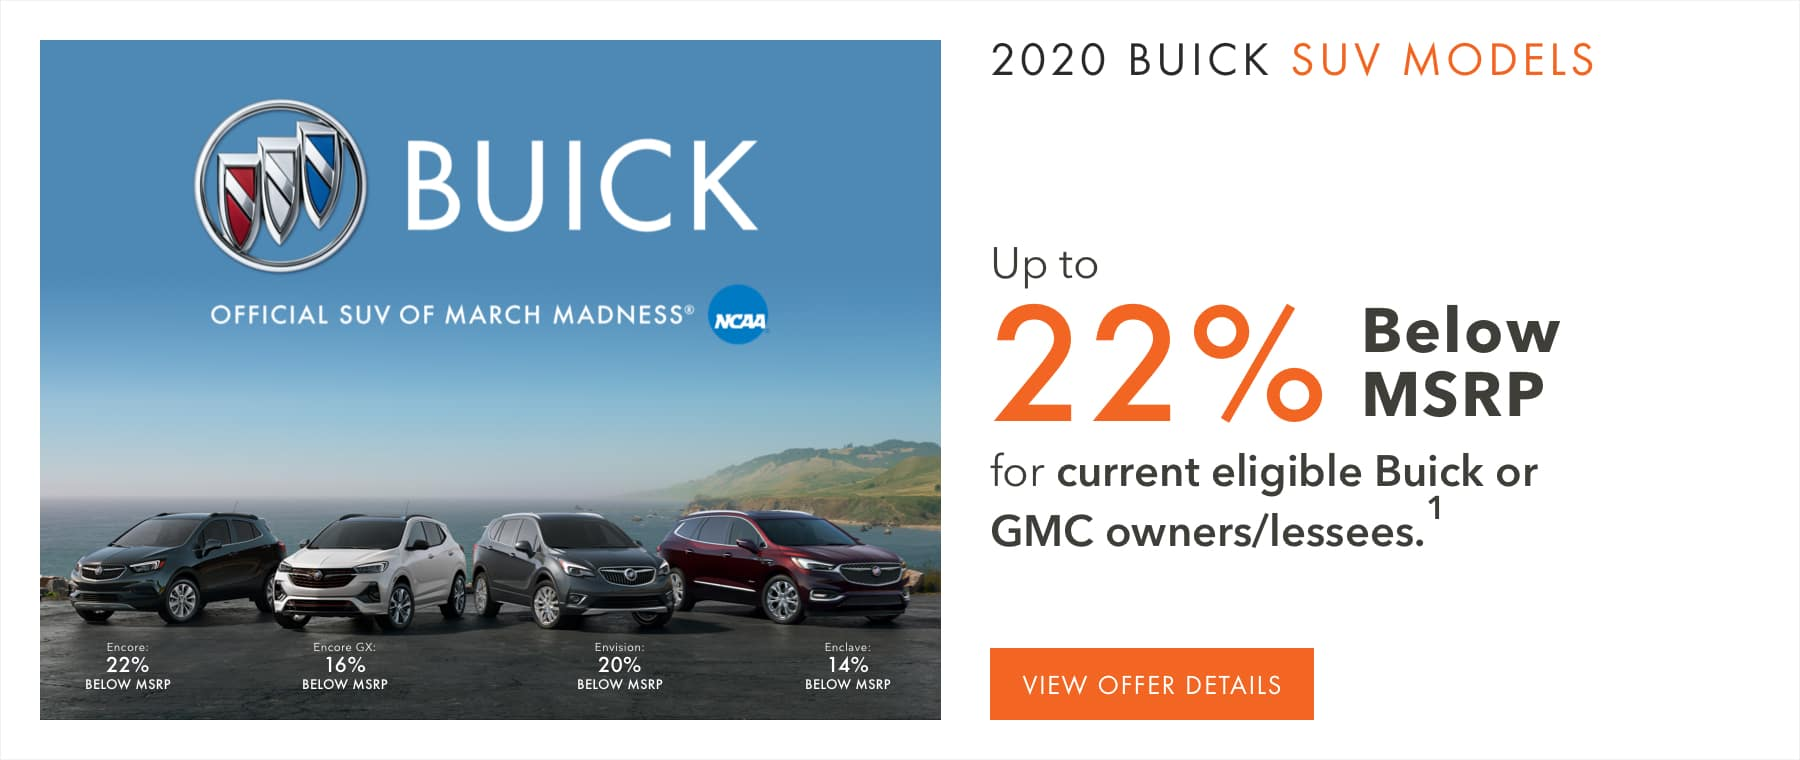 Up to 22% below MSRP for current eligible Buick or GMC owners/lessees.1